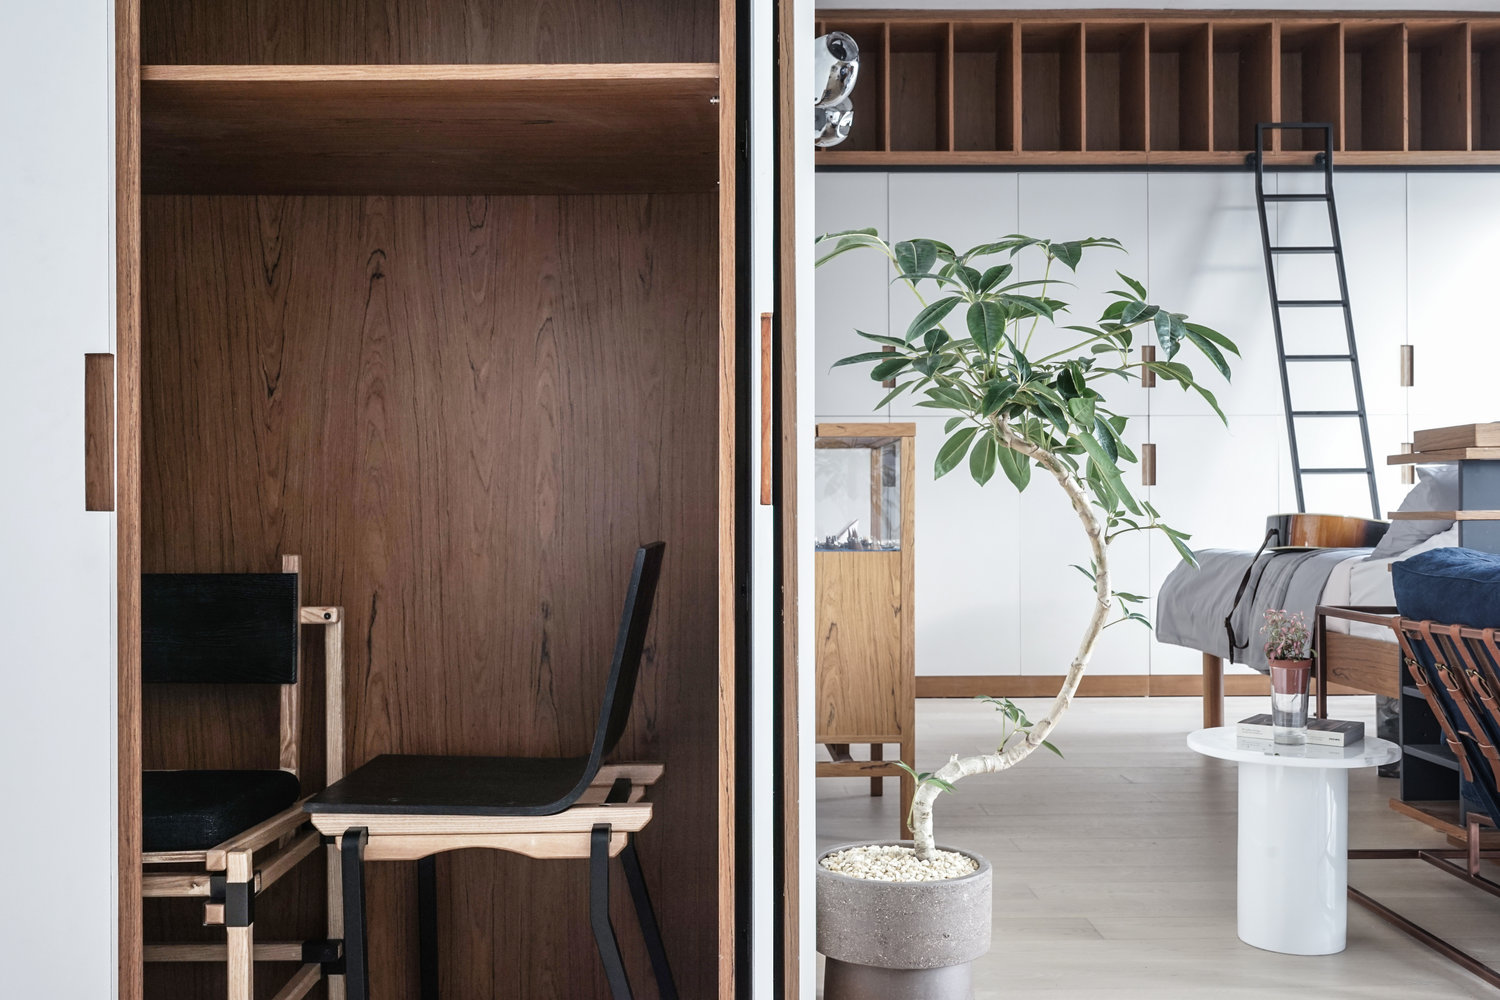 Wooden Office Compartment Wall Ladder Arty Studio - 3 small studio apartments that exude luxurious space